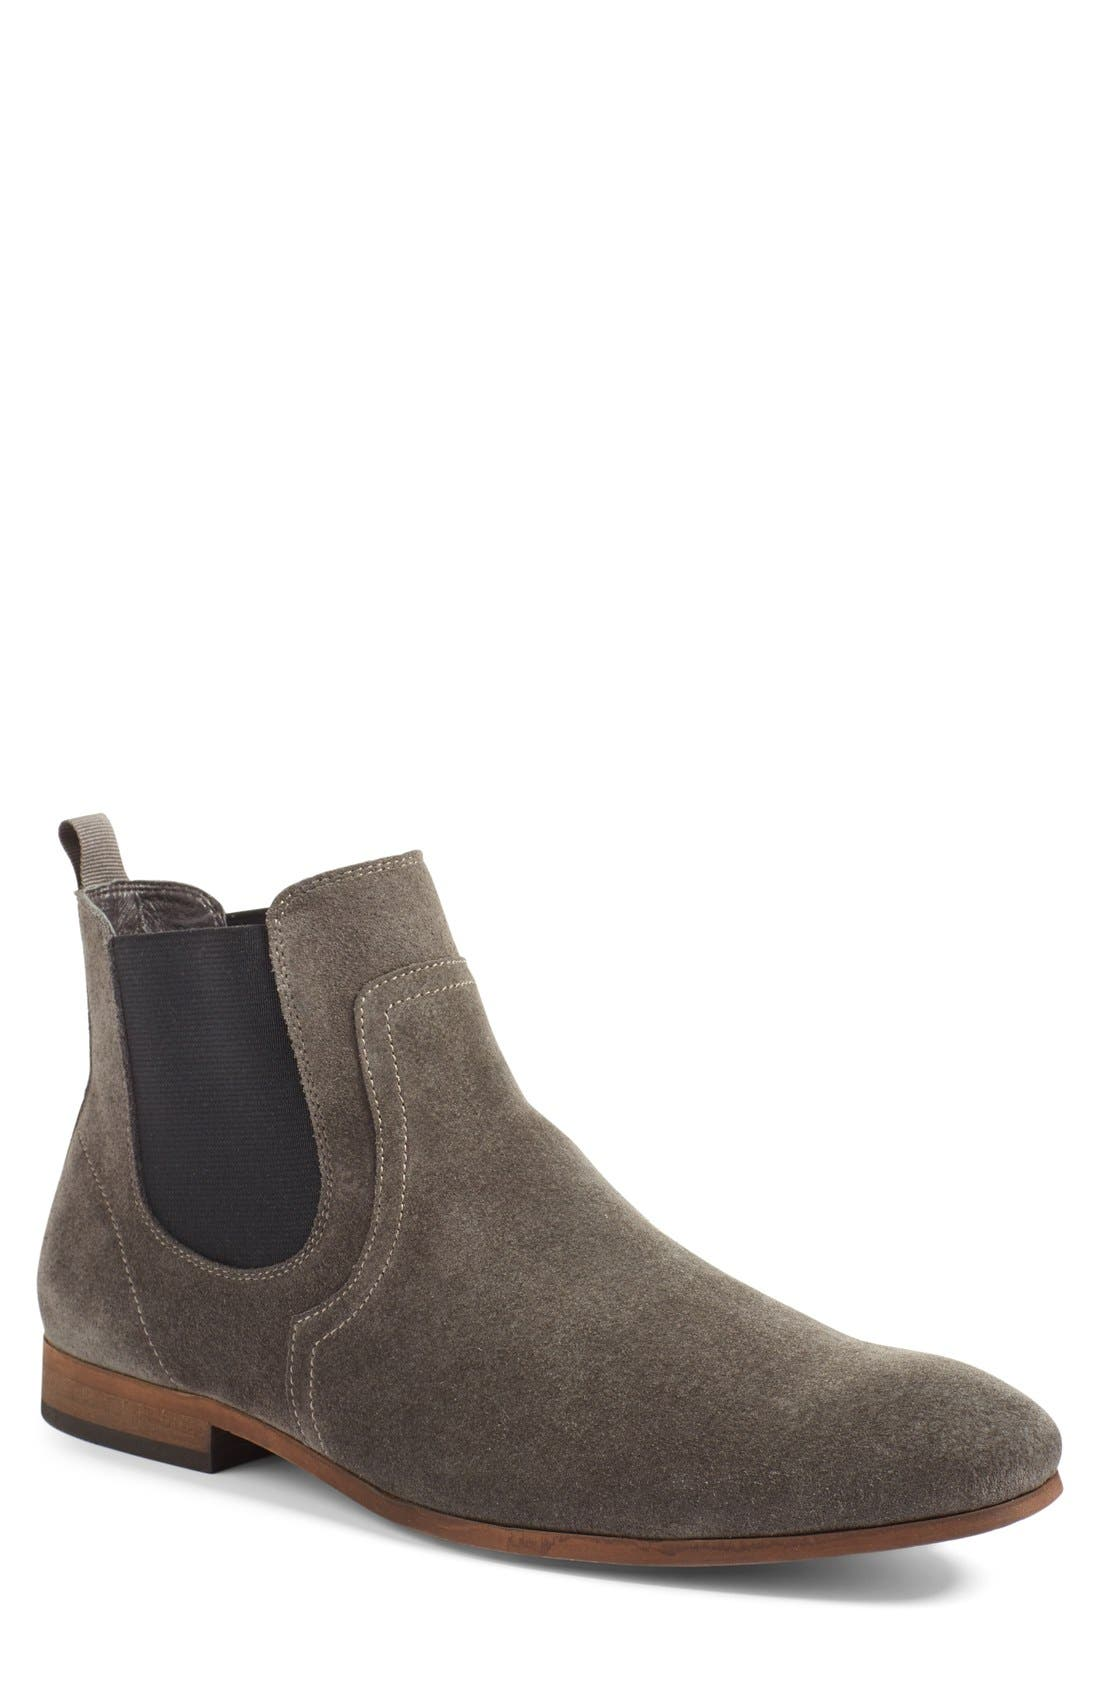 Brysen Chelsea Boot,                             Main thumbnail 3, color,